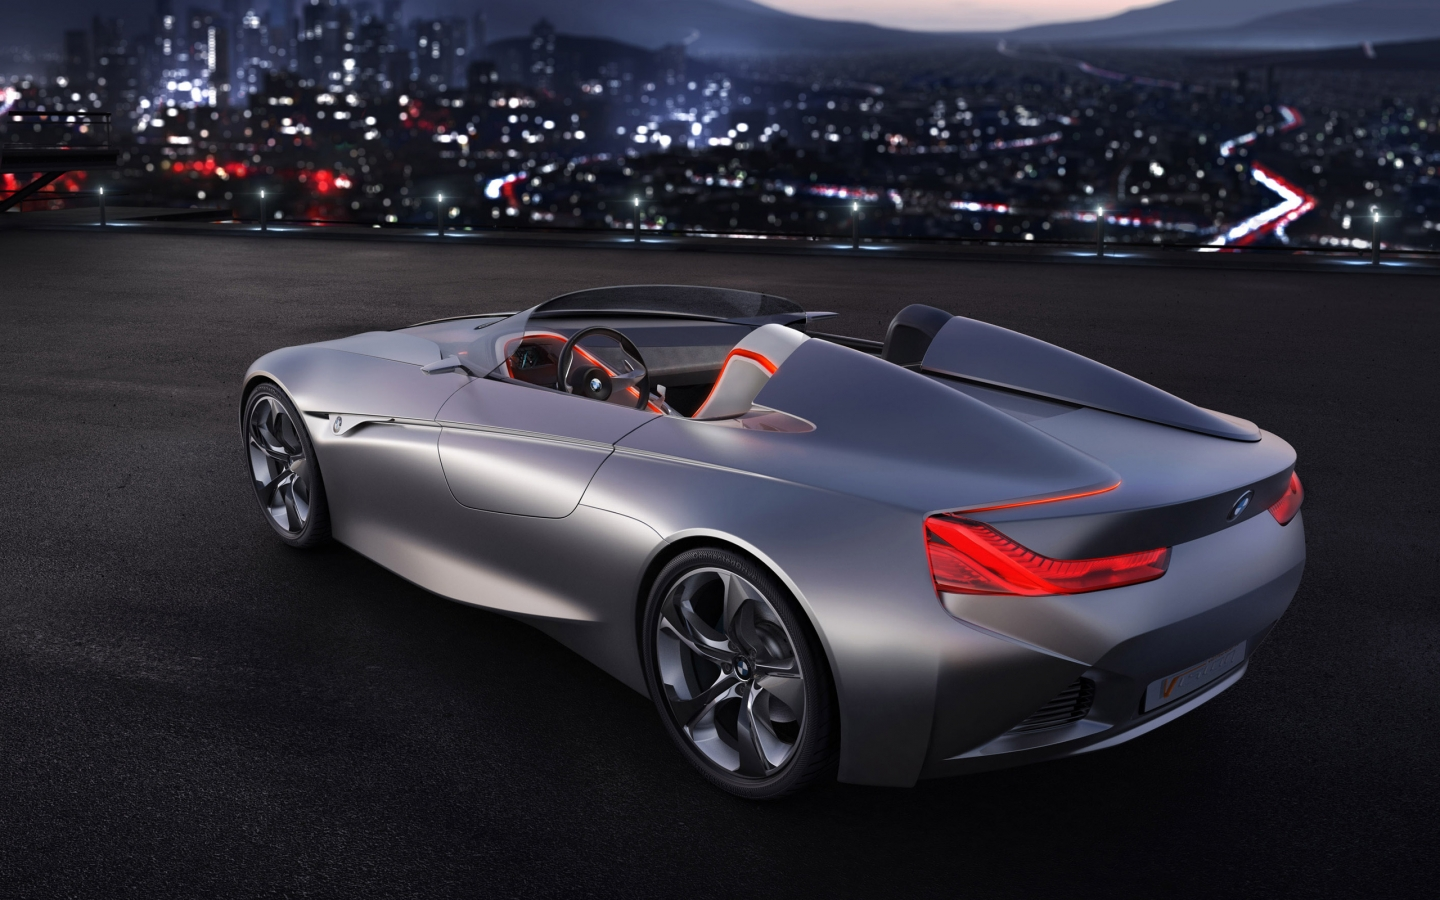 BMW Vision Connected Drive Concept 2011 for 1440 x 900 widescreen resolution